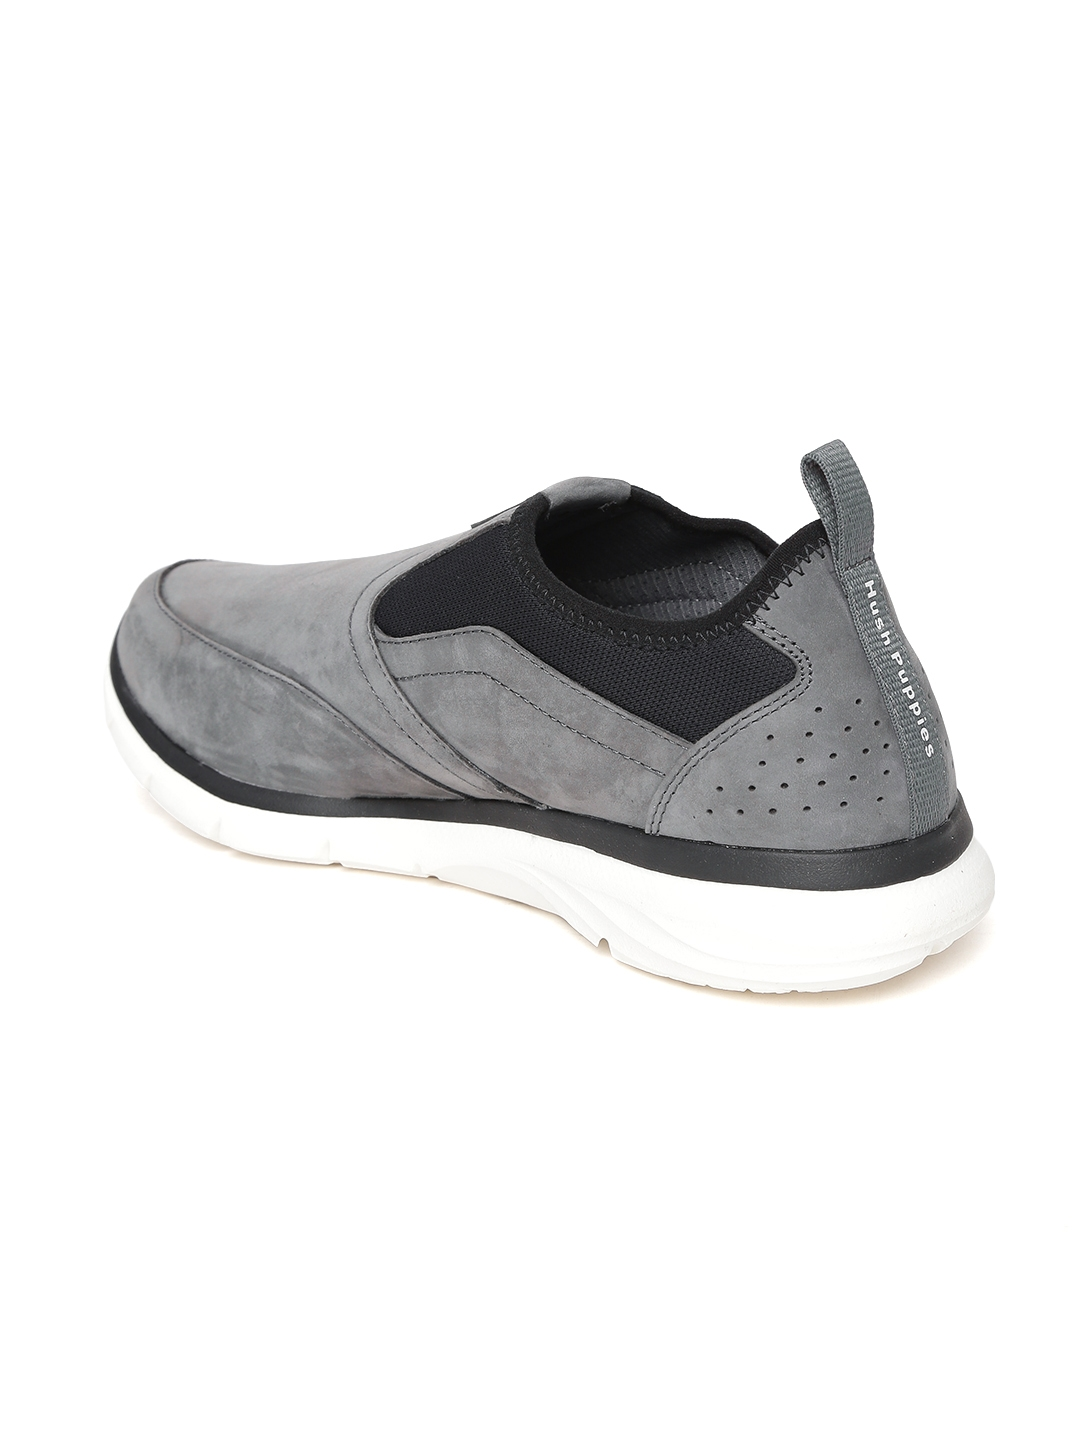 1fcf1114d9d40 Buy Hush Puppies Men Grey Leather Slip On Sneakers - Casual Shoes ...